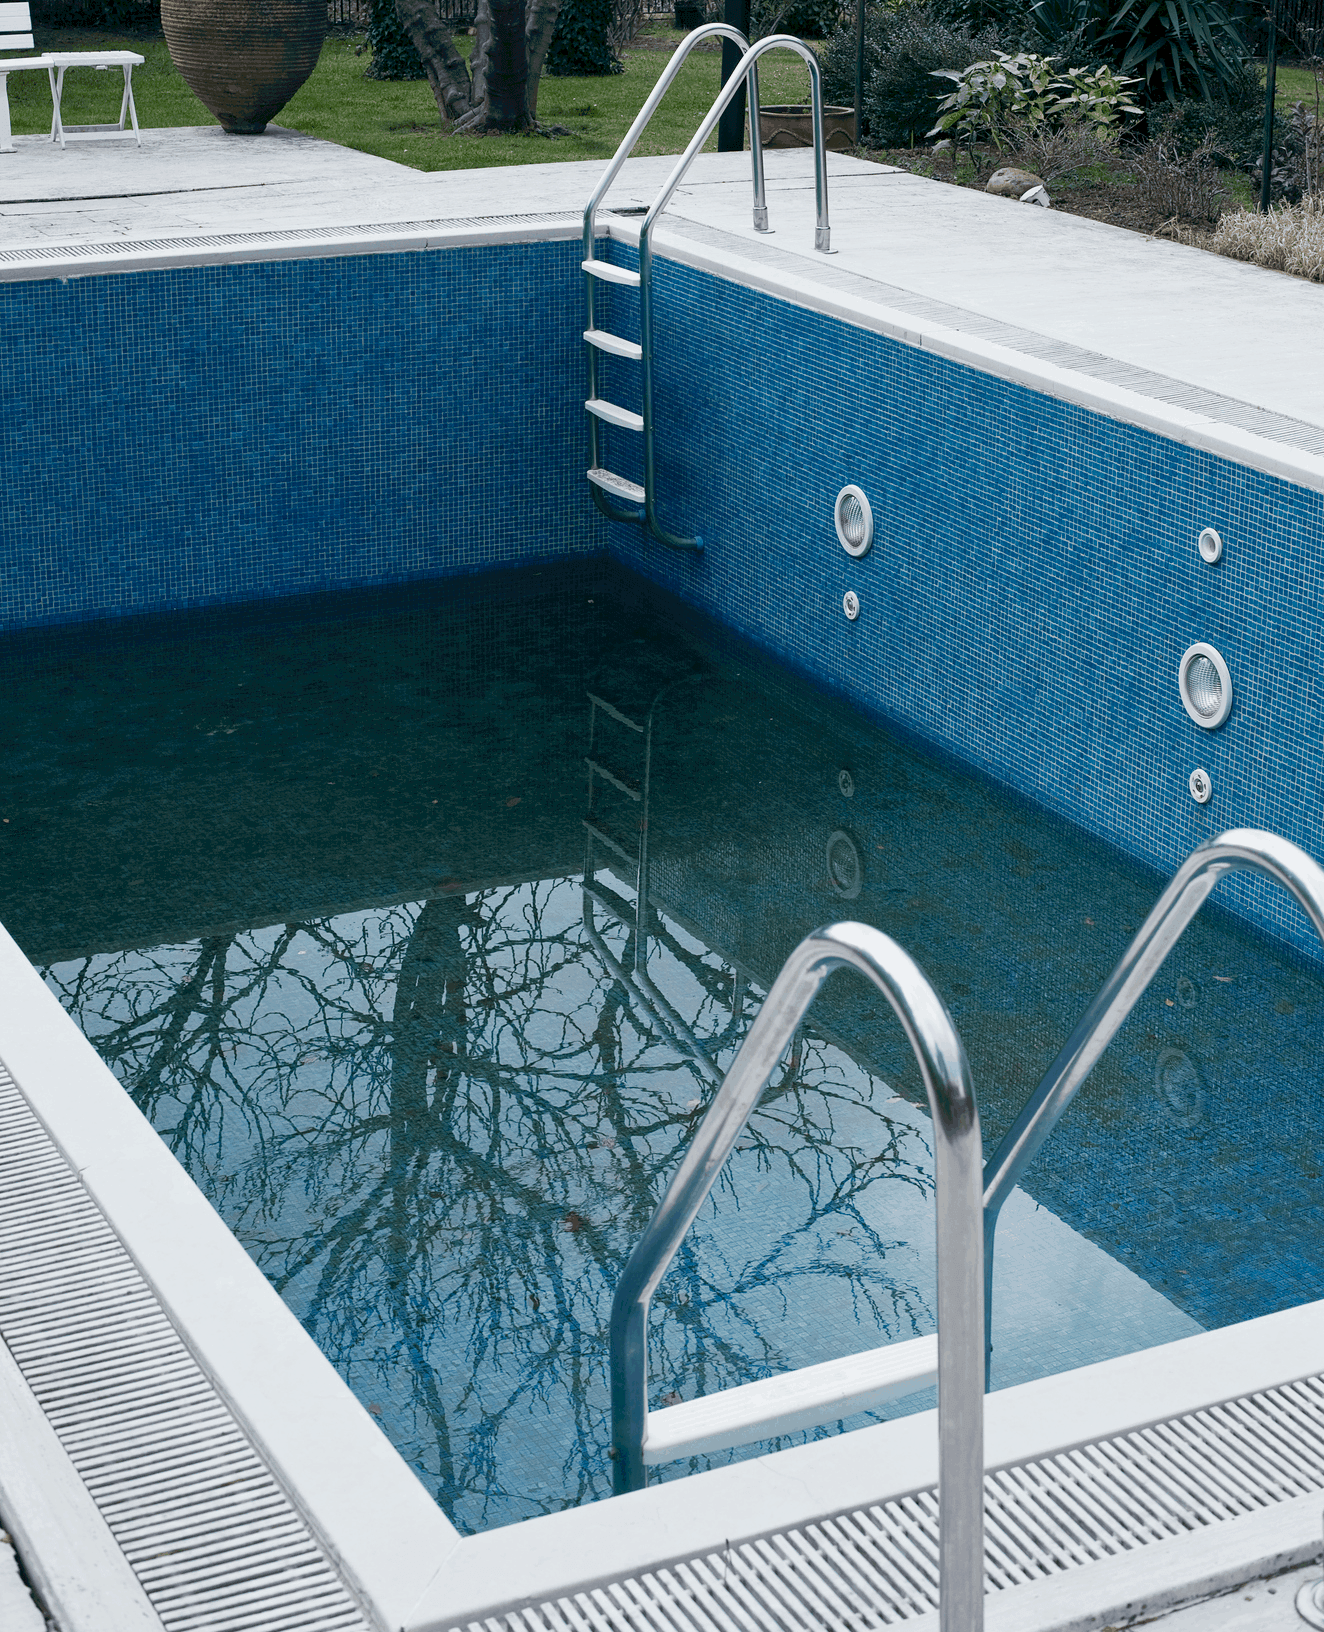 Pool leak detection Seaholme